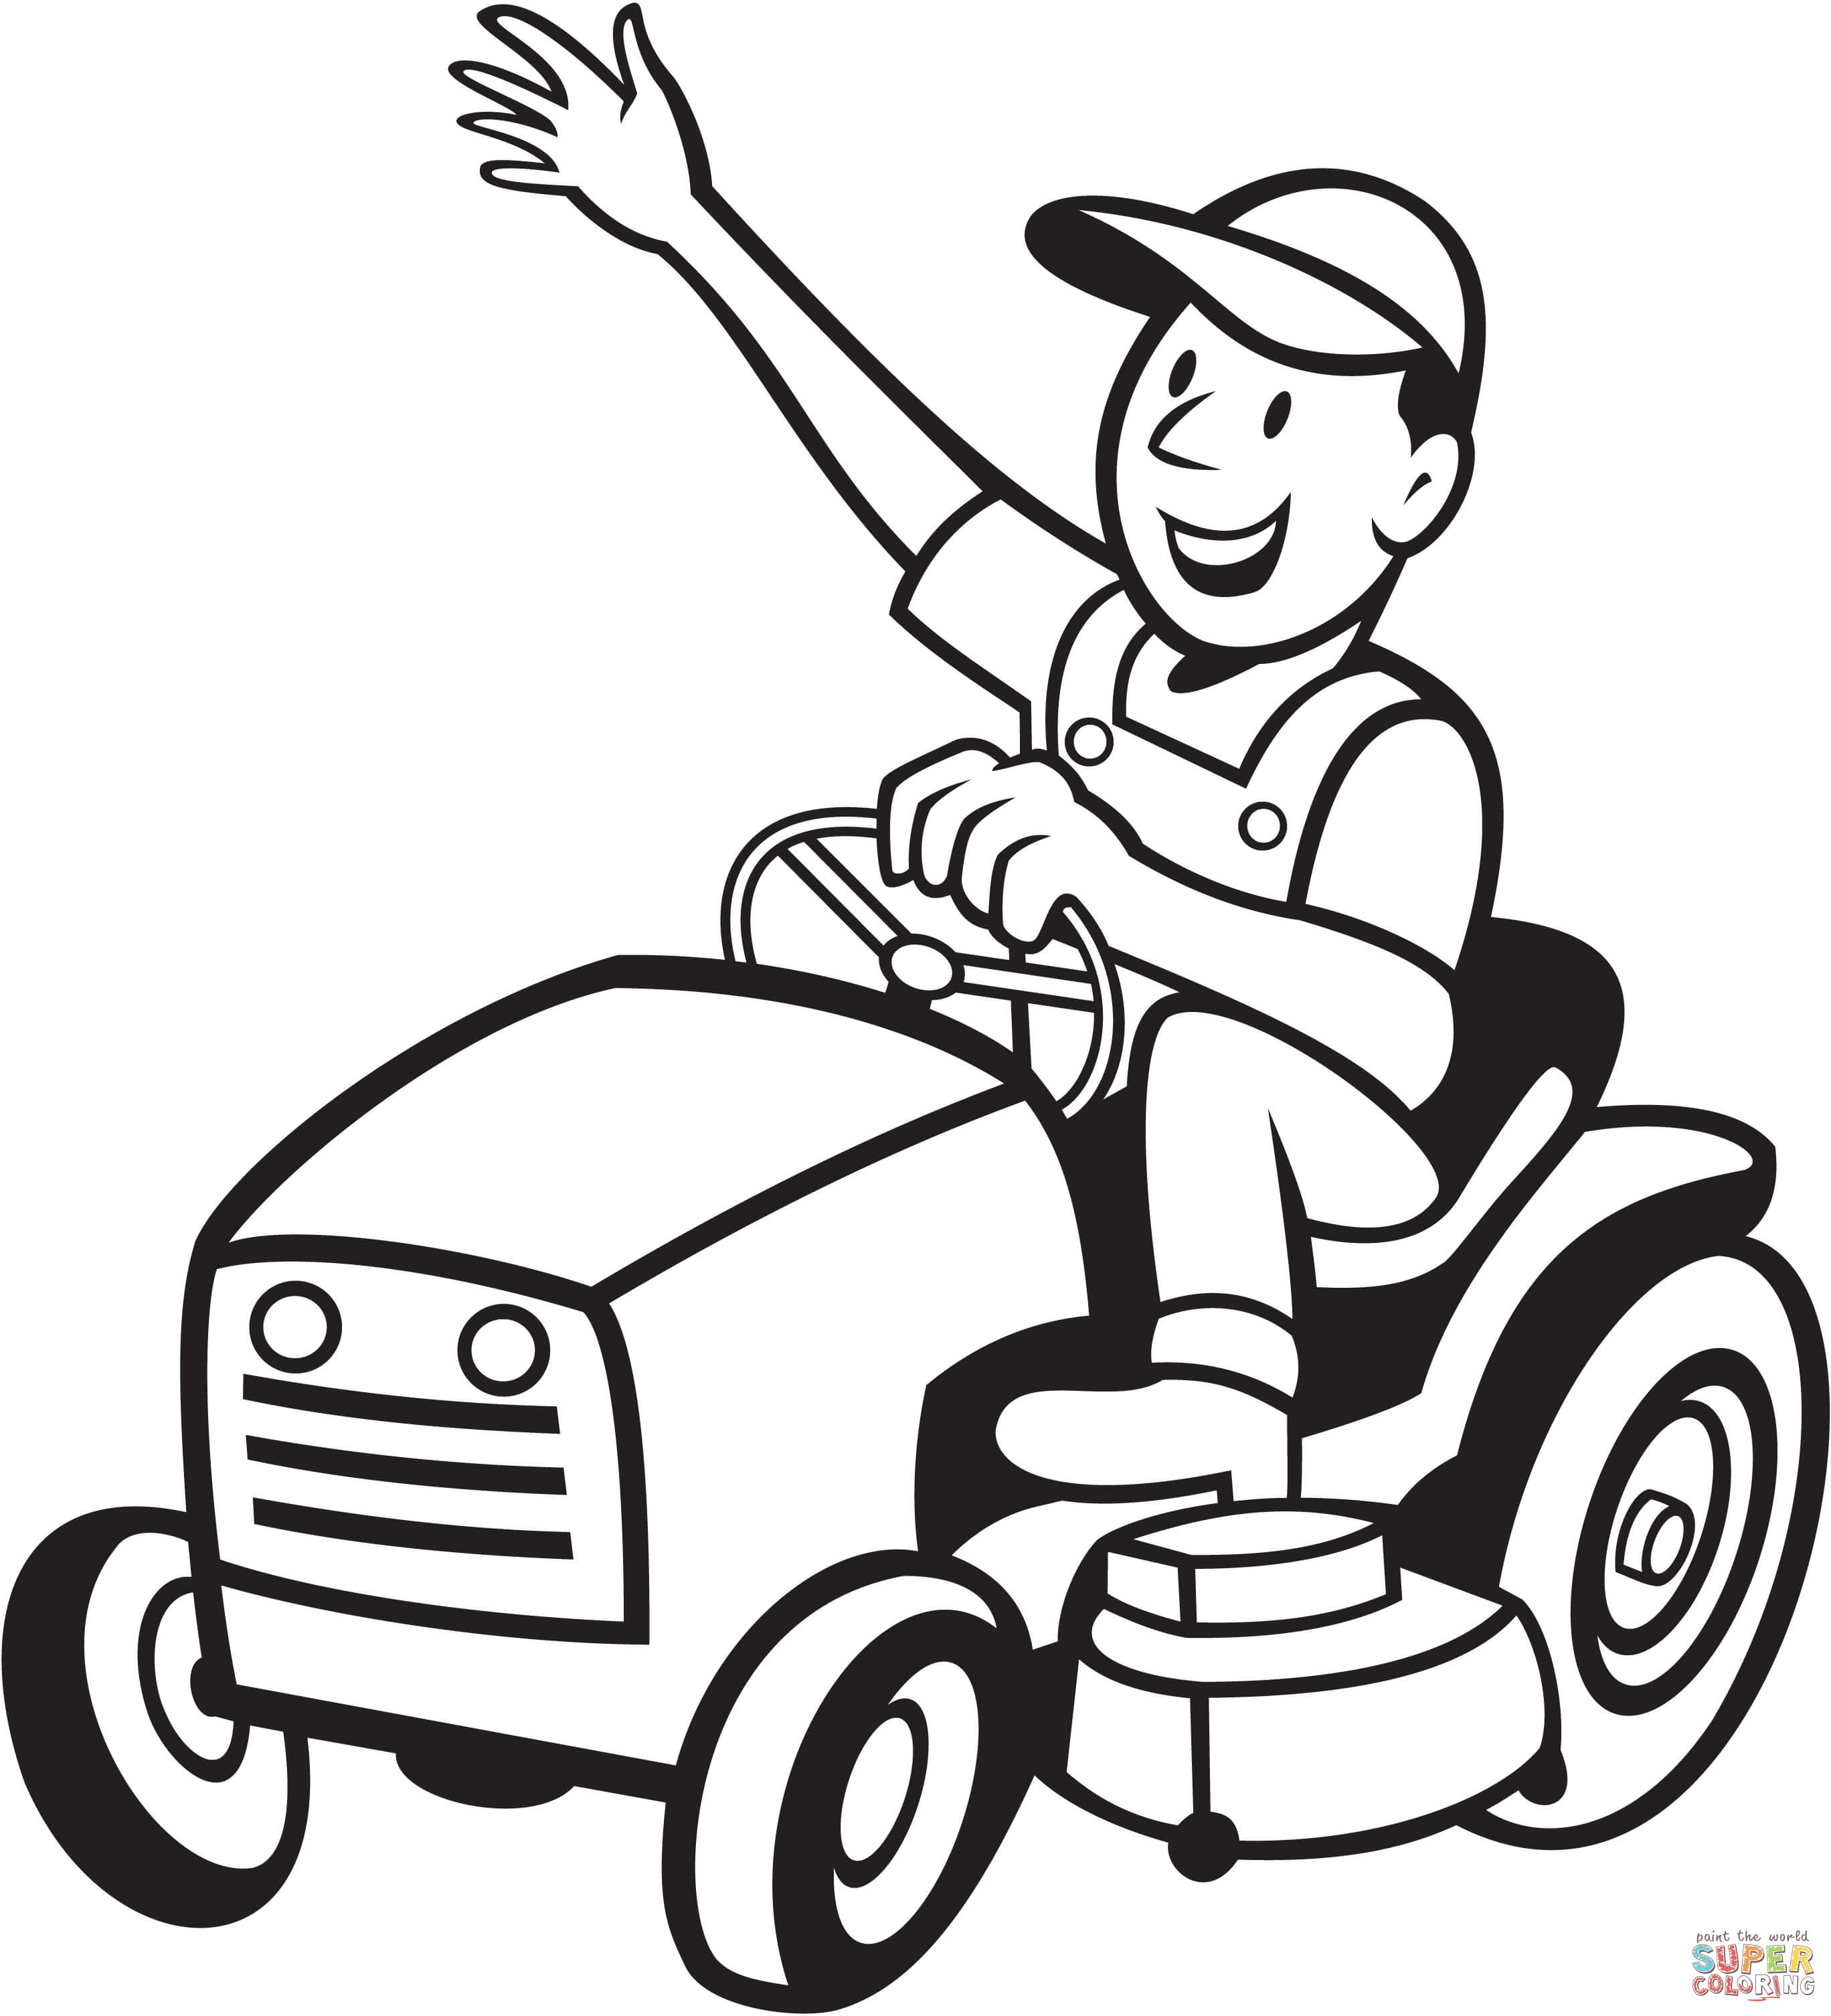 Lawn mower clipart black and white 1 » Clipart Station.